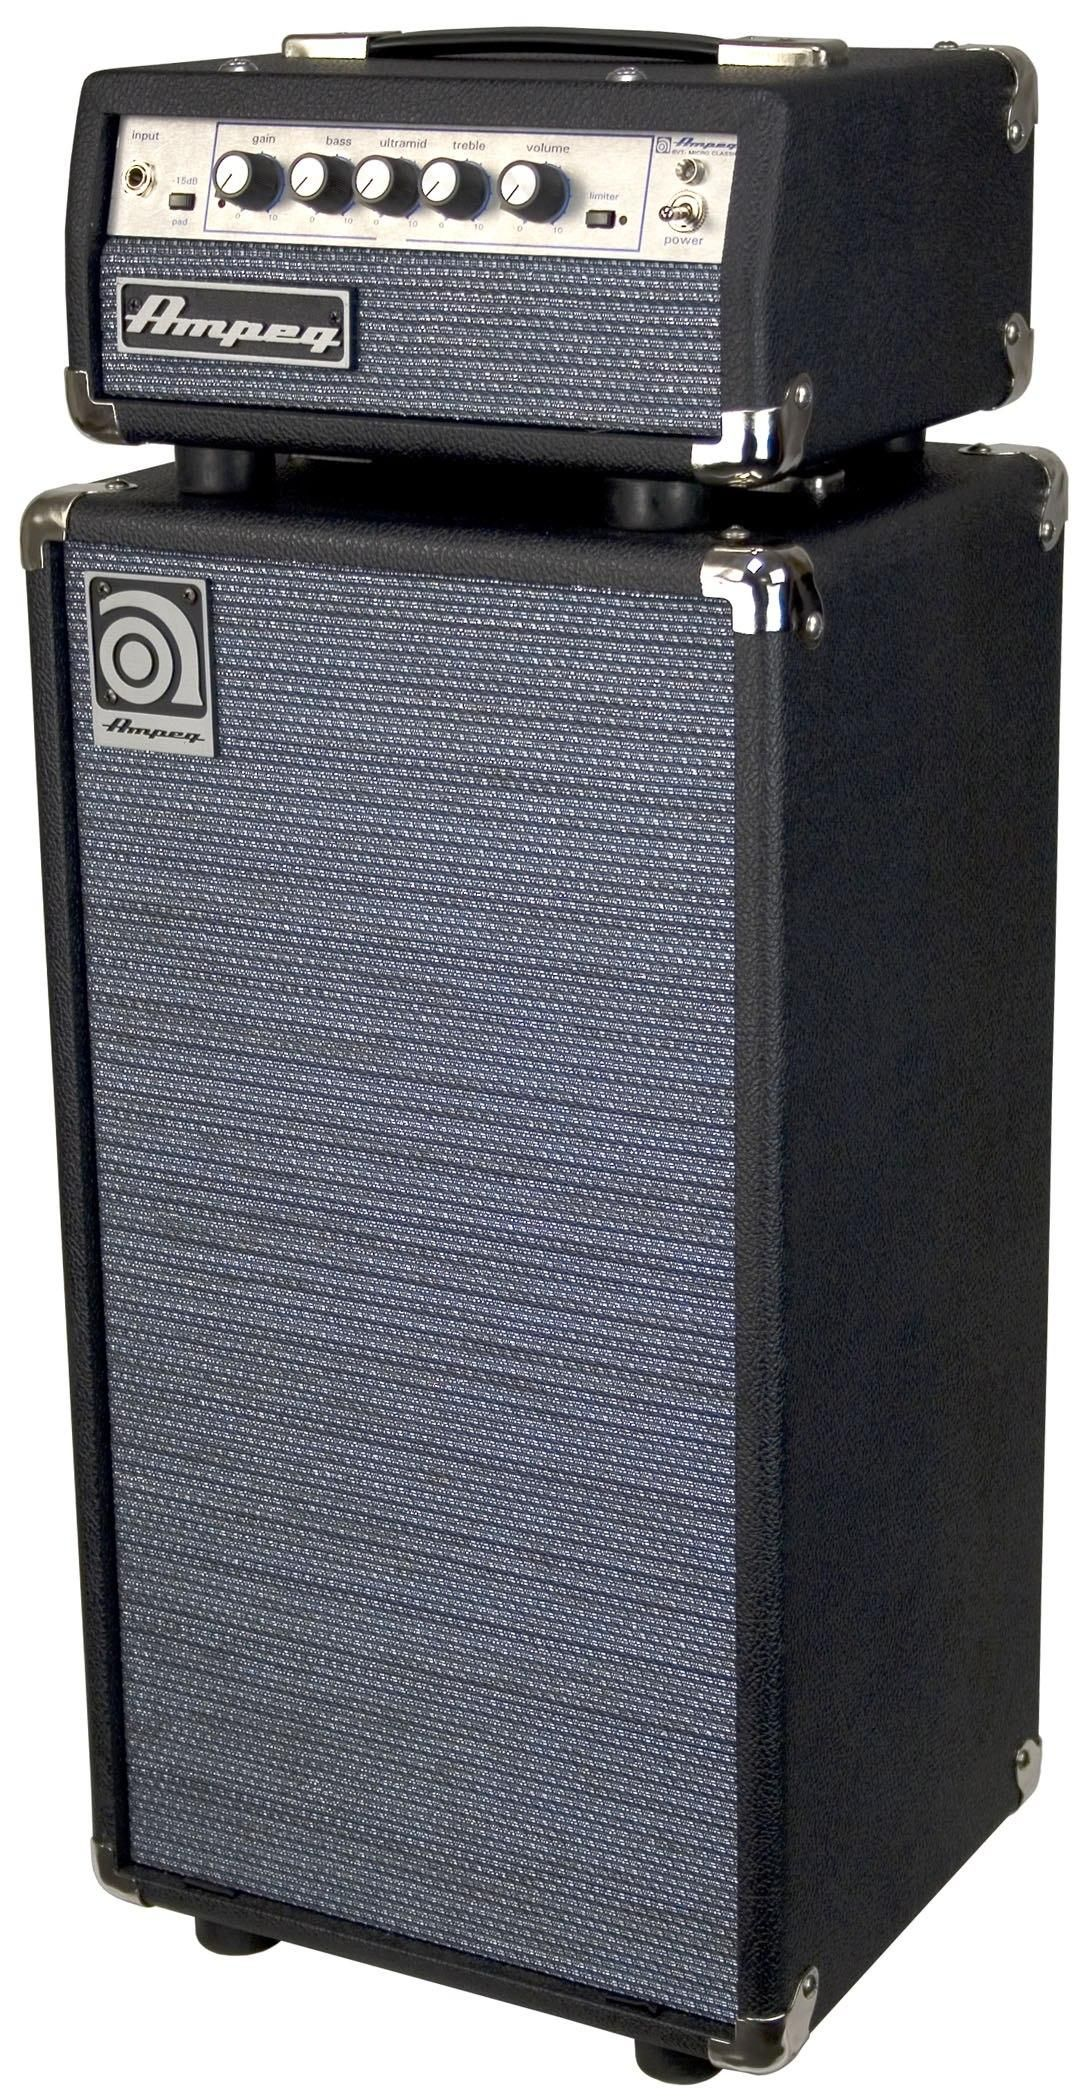 I'm really getting into the bass. My brother used to have a rig like this.